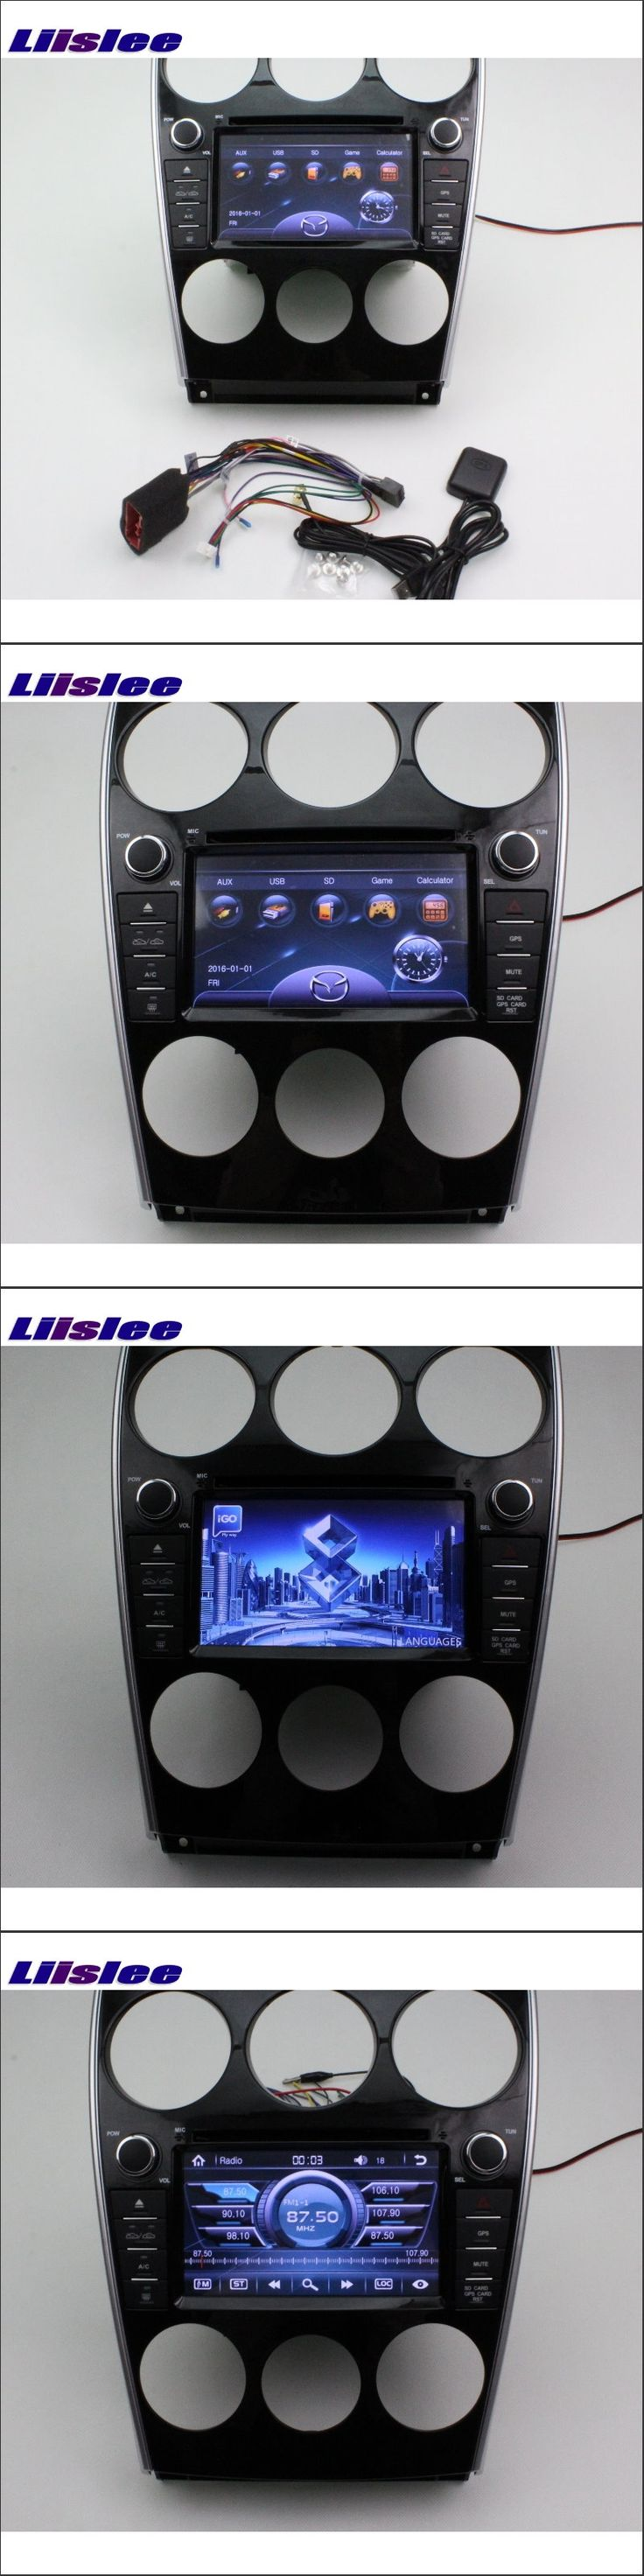 Liislee For Mazda 6 Mazda6 2002~2008 Car GPS Navigation Stere Radio CD DVD Player HD Touch Screen Bluetooth Multimedia System